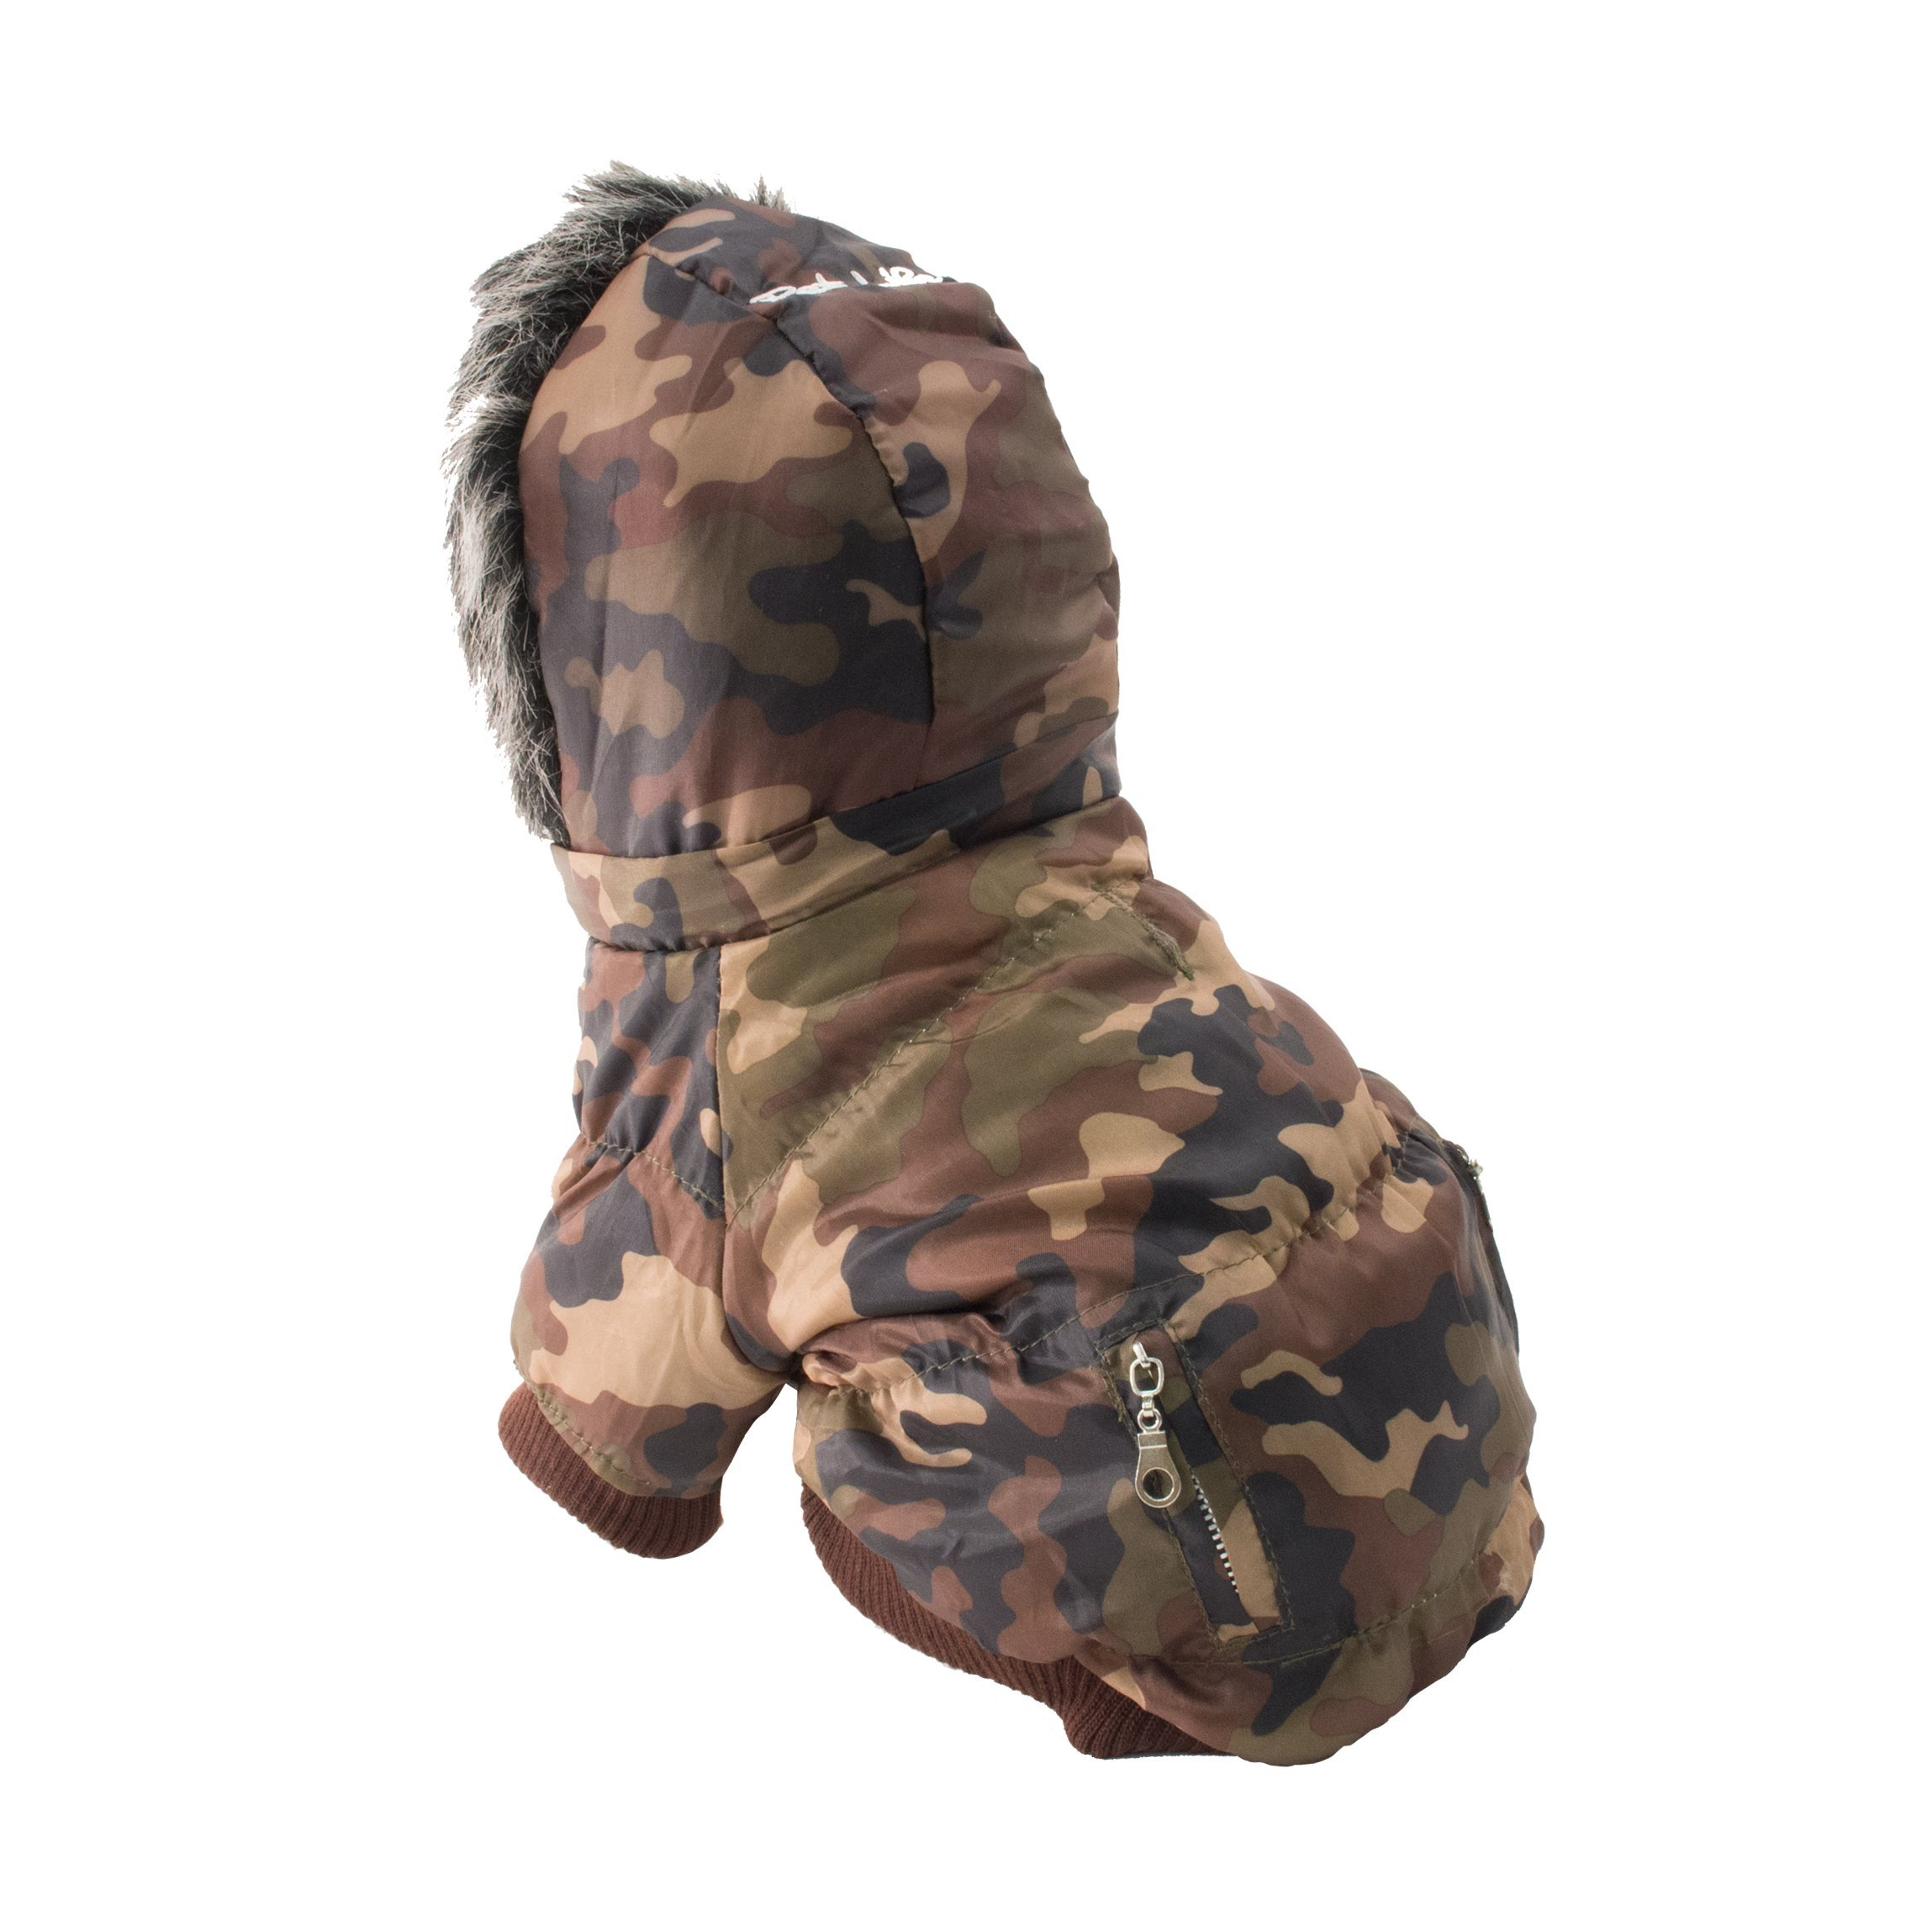 PET LIFE Classic Metallic Fashion Pet Dog Coat Jacket Parka w/ 3M Insulation and Removable Hood, X-Small, Camouflage